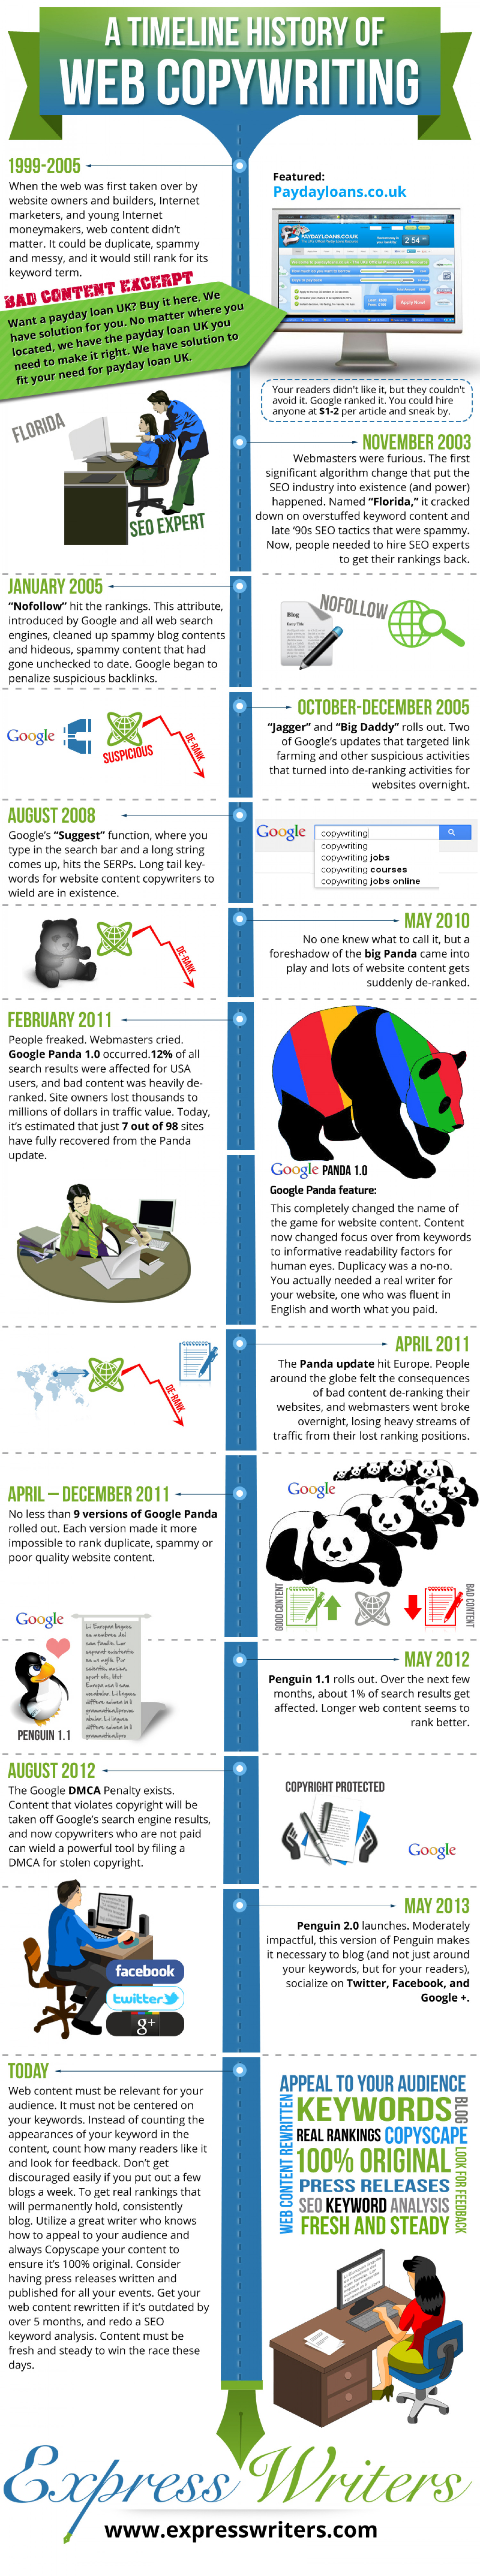 A Timeline History of SEO and Web Copywriting Infographic